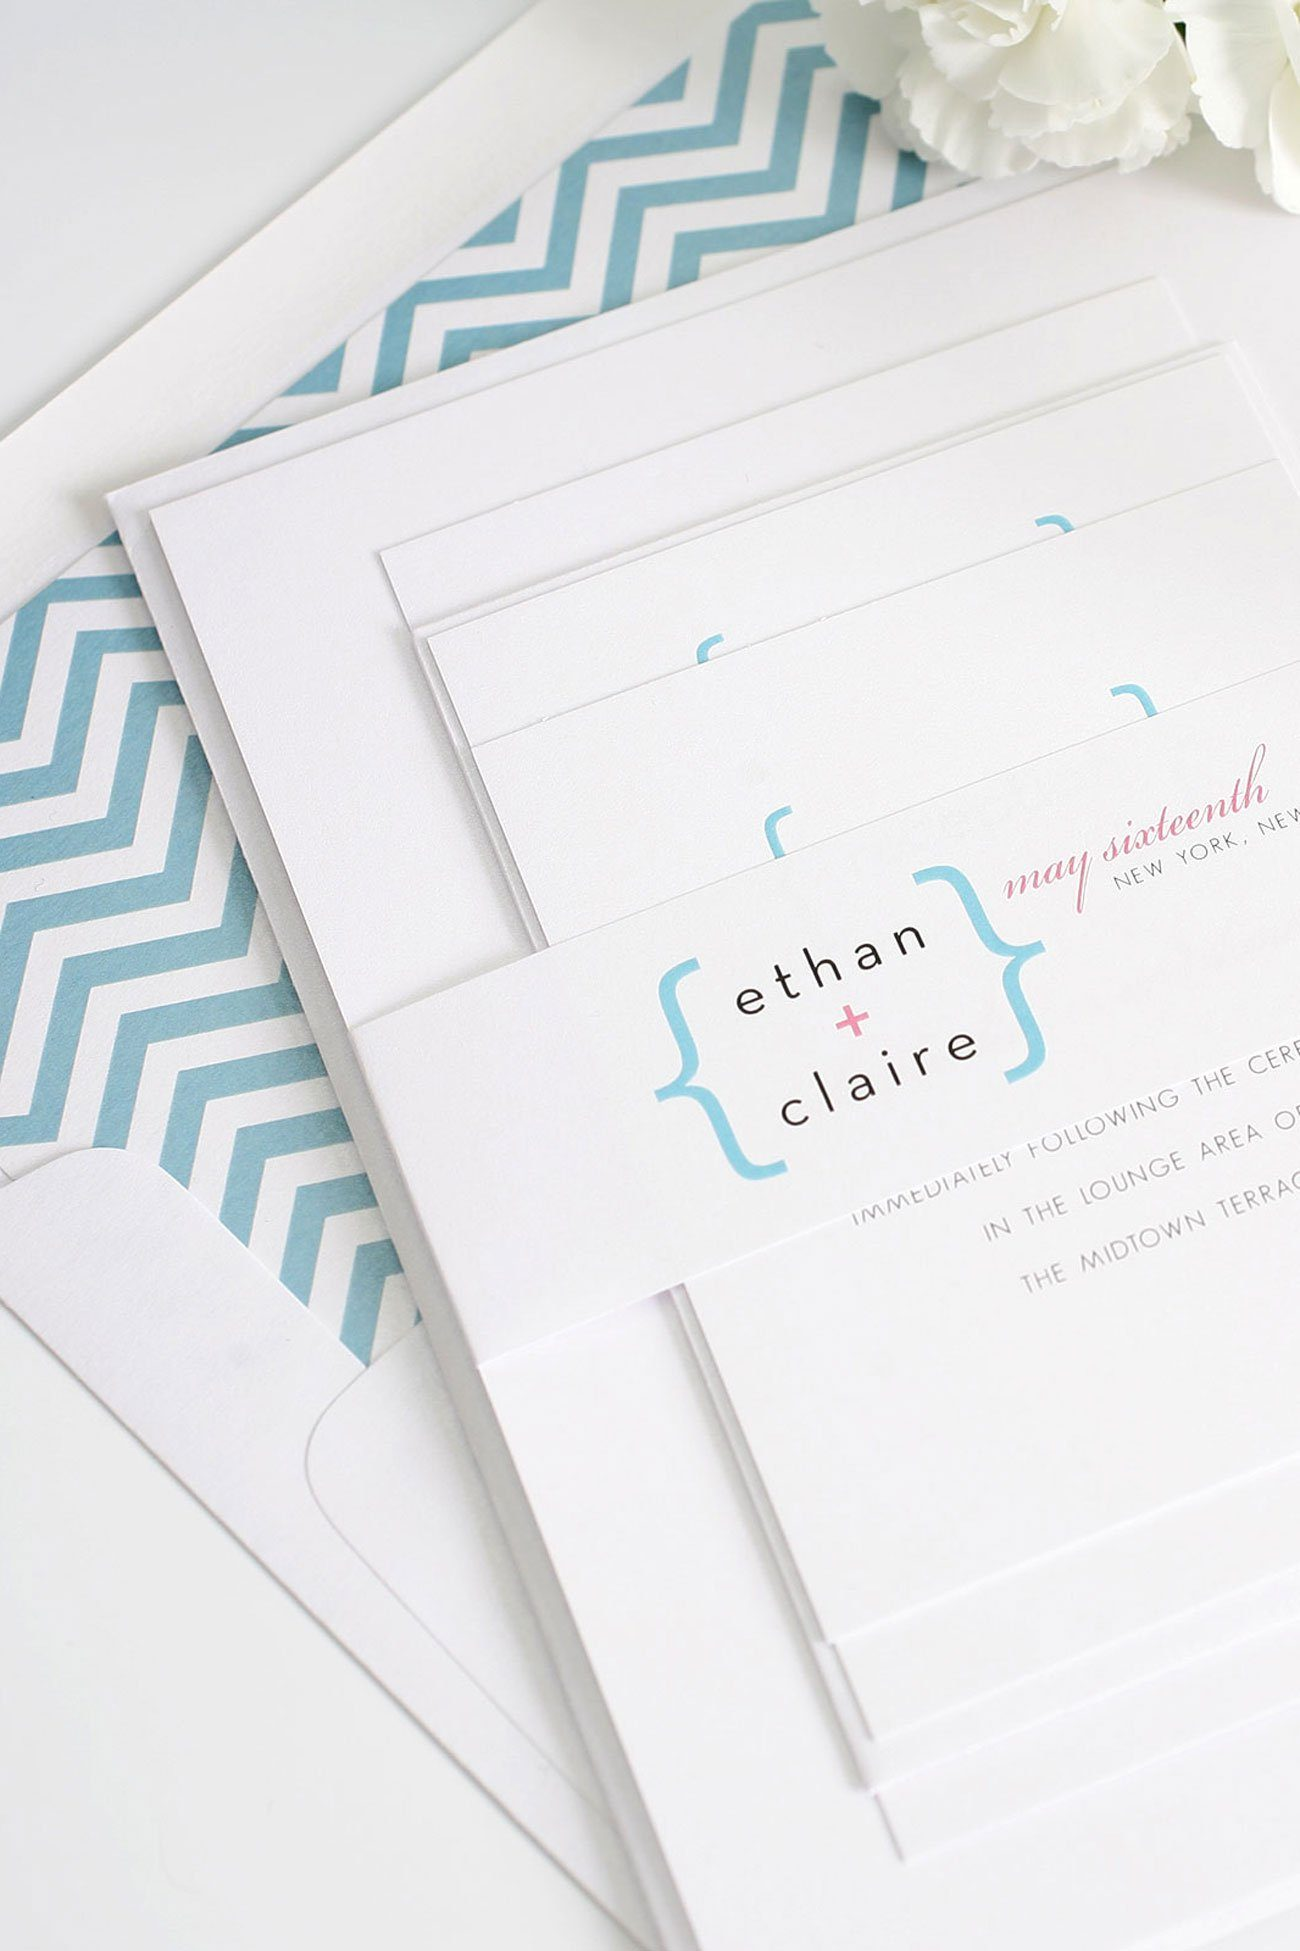 Modern chevron wedding invitations with plus sign